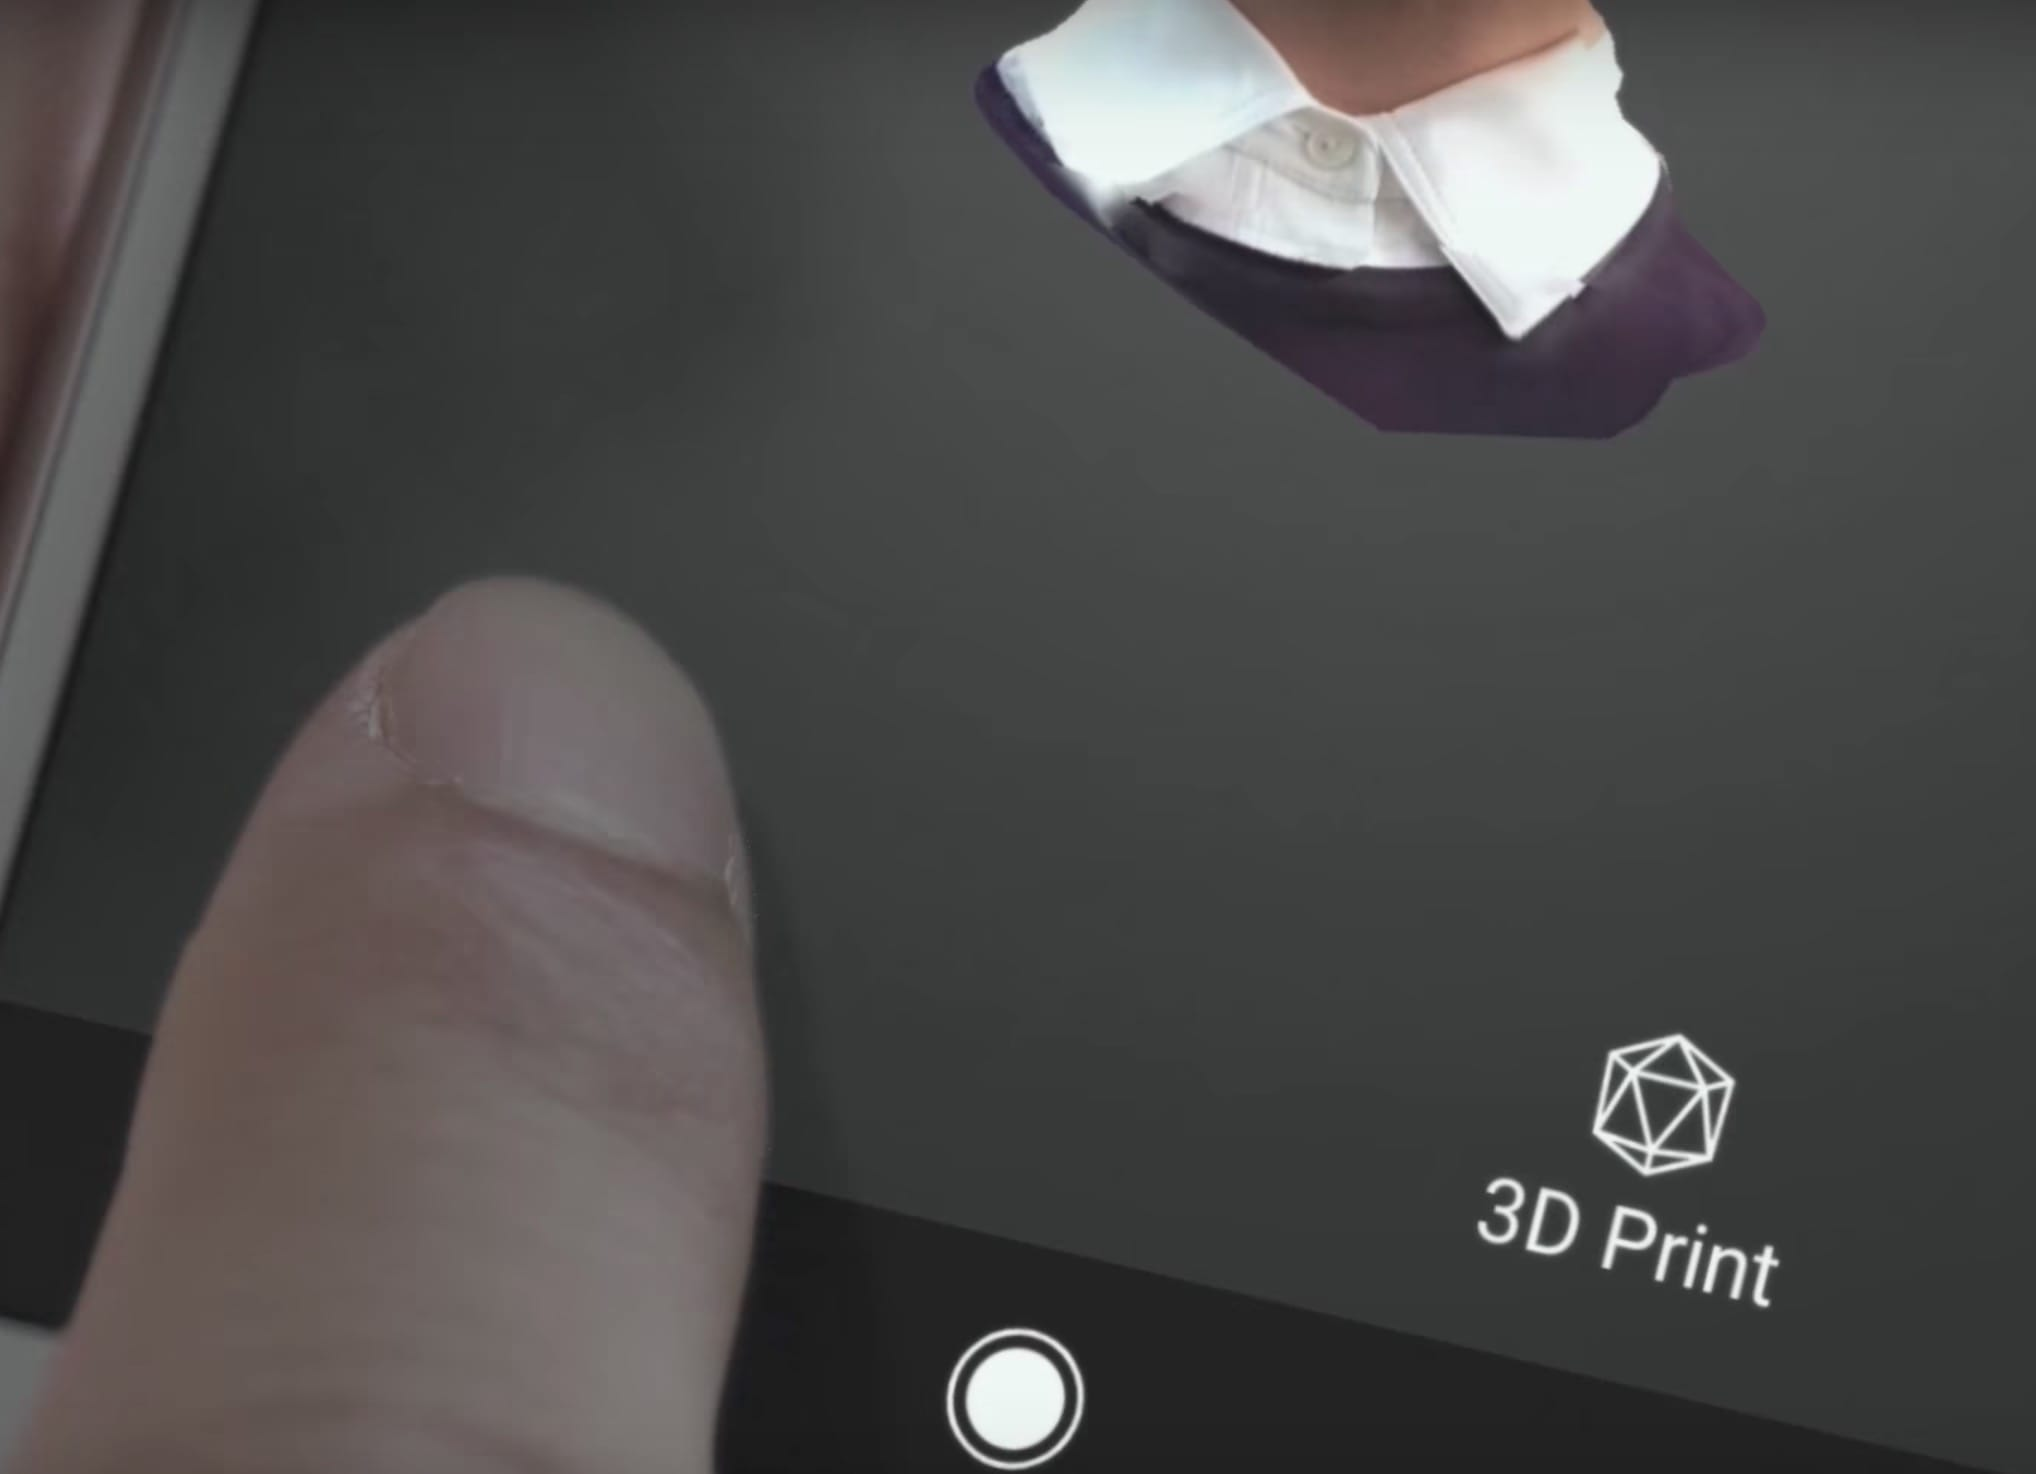 Could 3D scan to print on mobile devices become a thing?